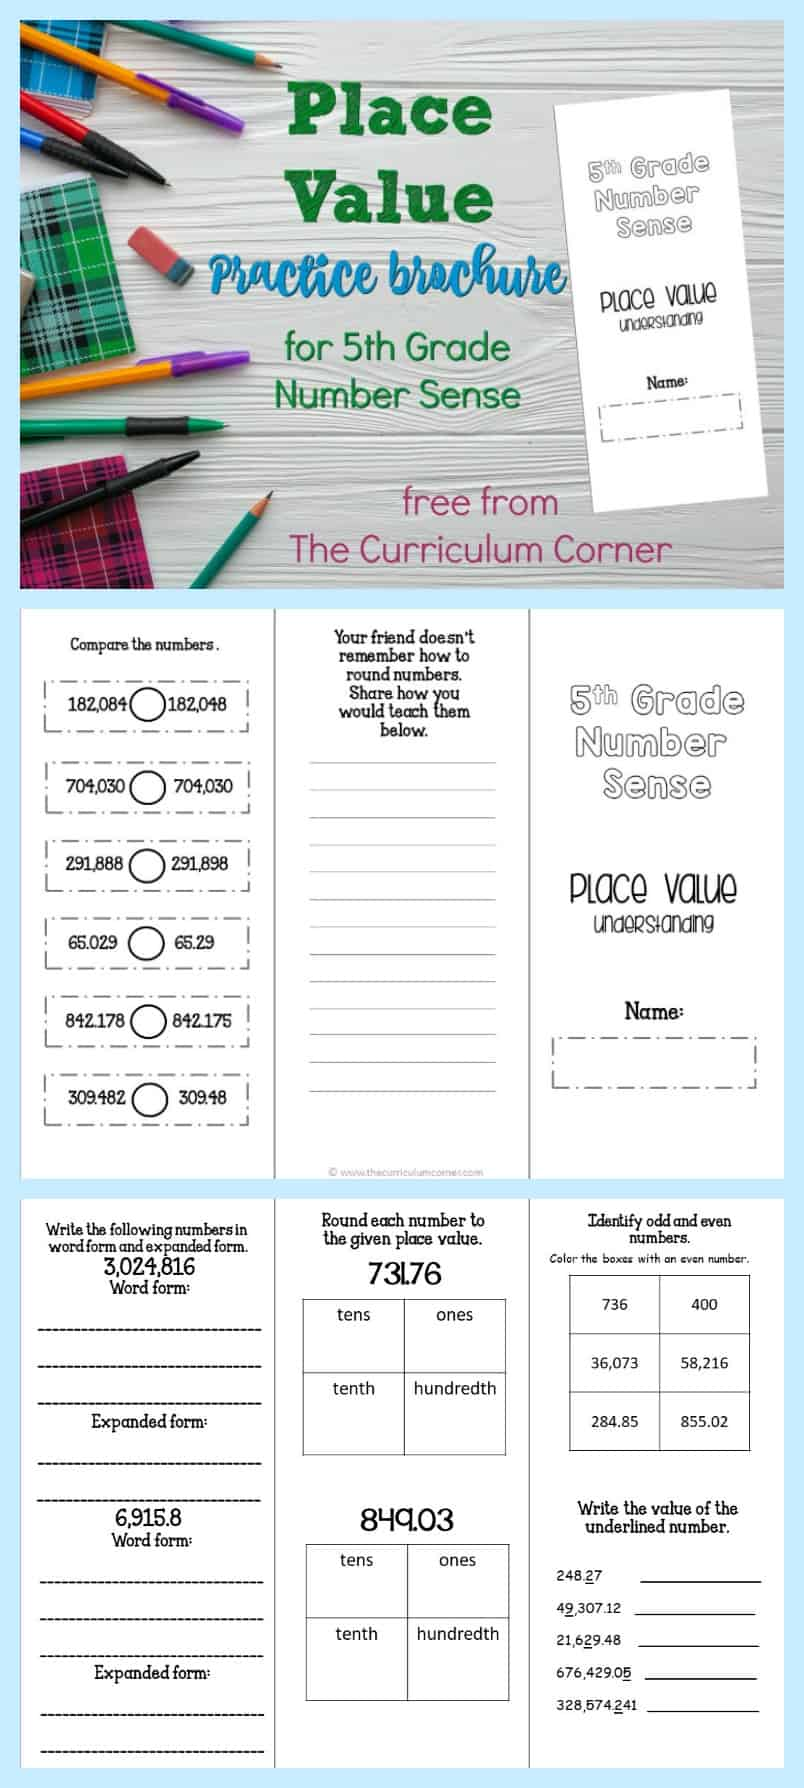 This brochure provides ready to go practice for fifth grade place value - it addresses fifth grade concepts.